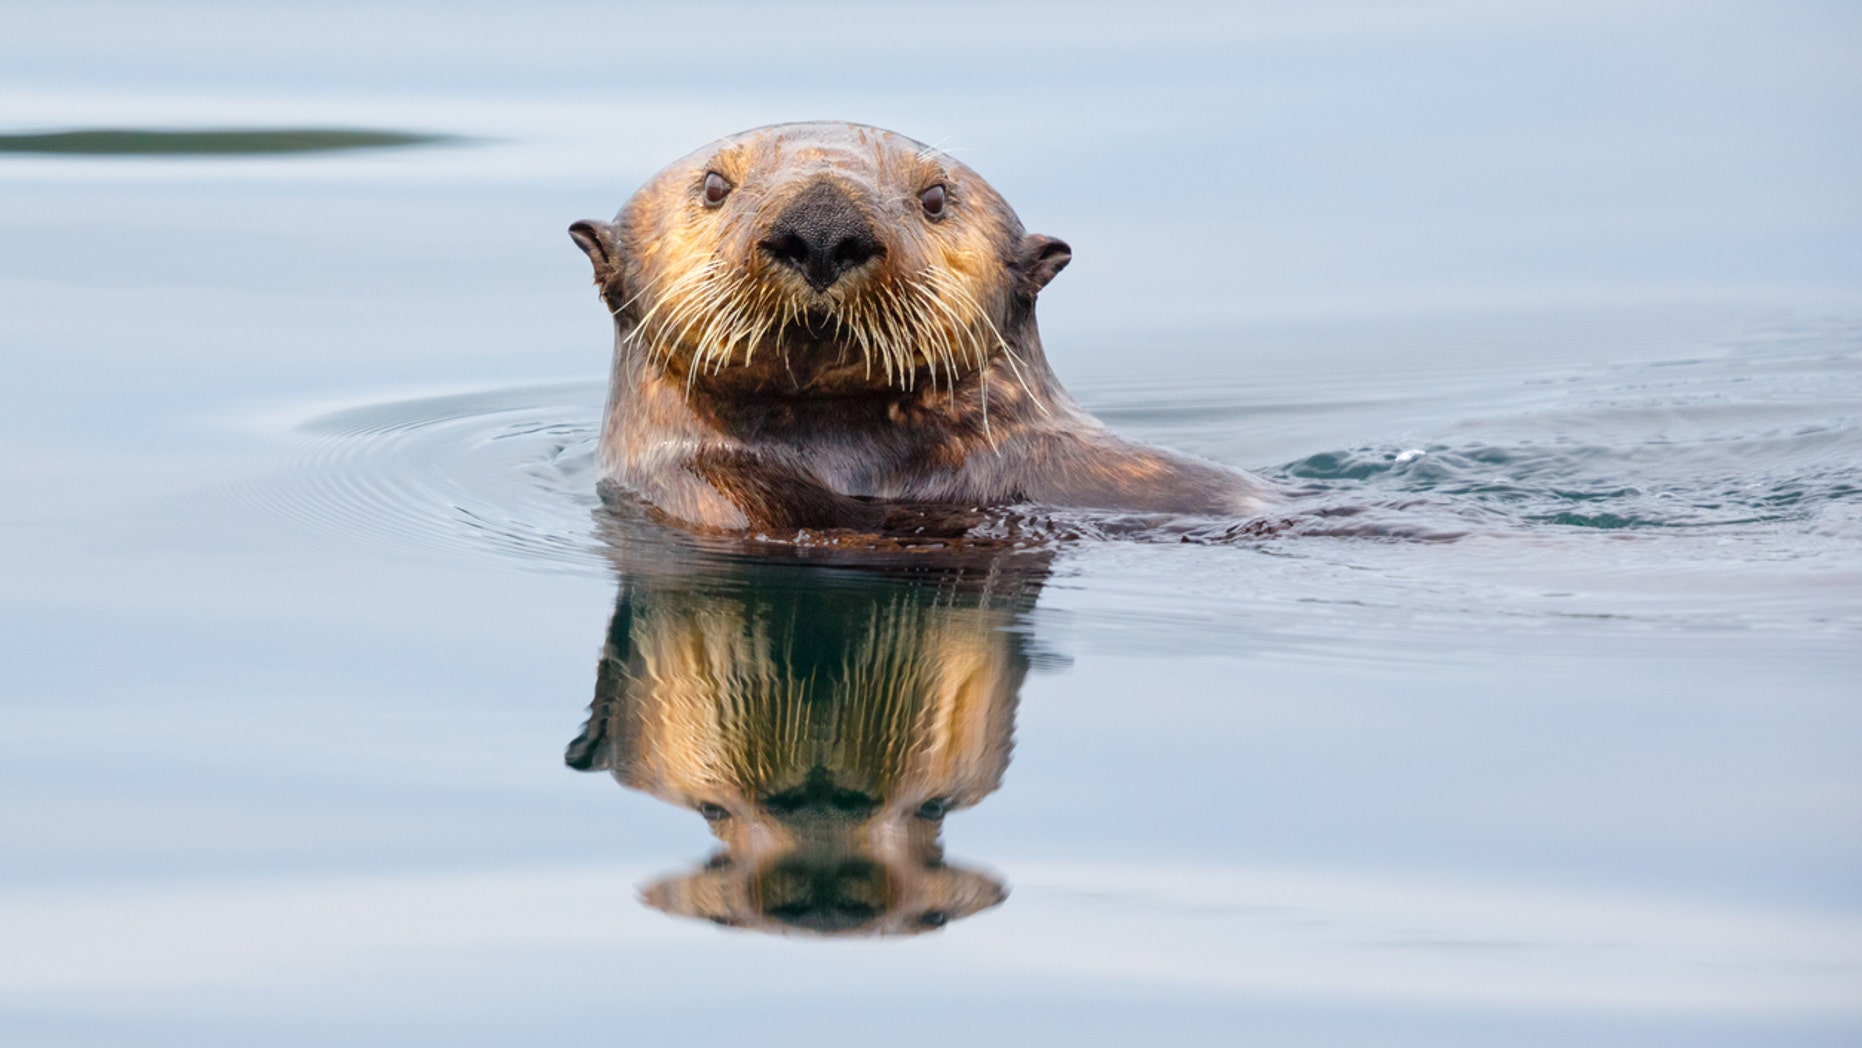 Monterey Bay Aquarium Apologizes For Referring To Otter As 'Thicc'